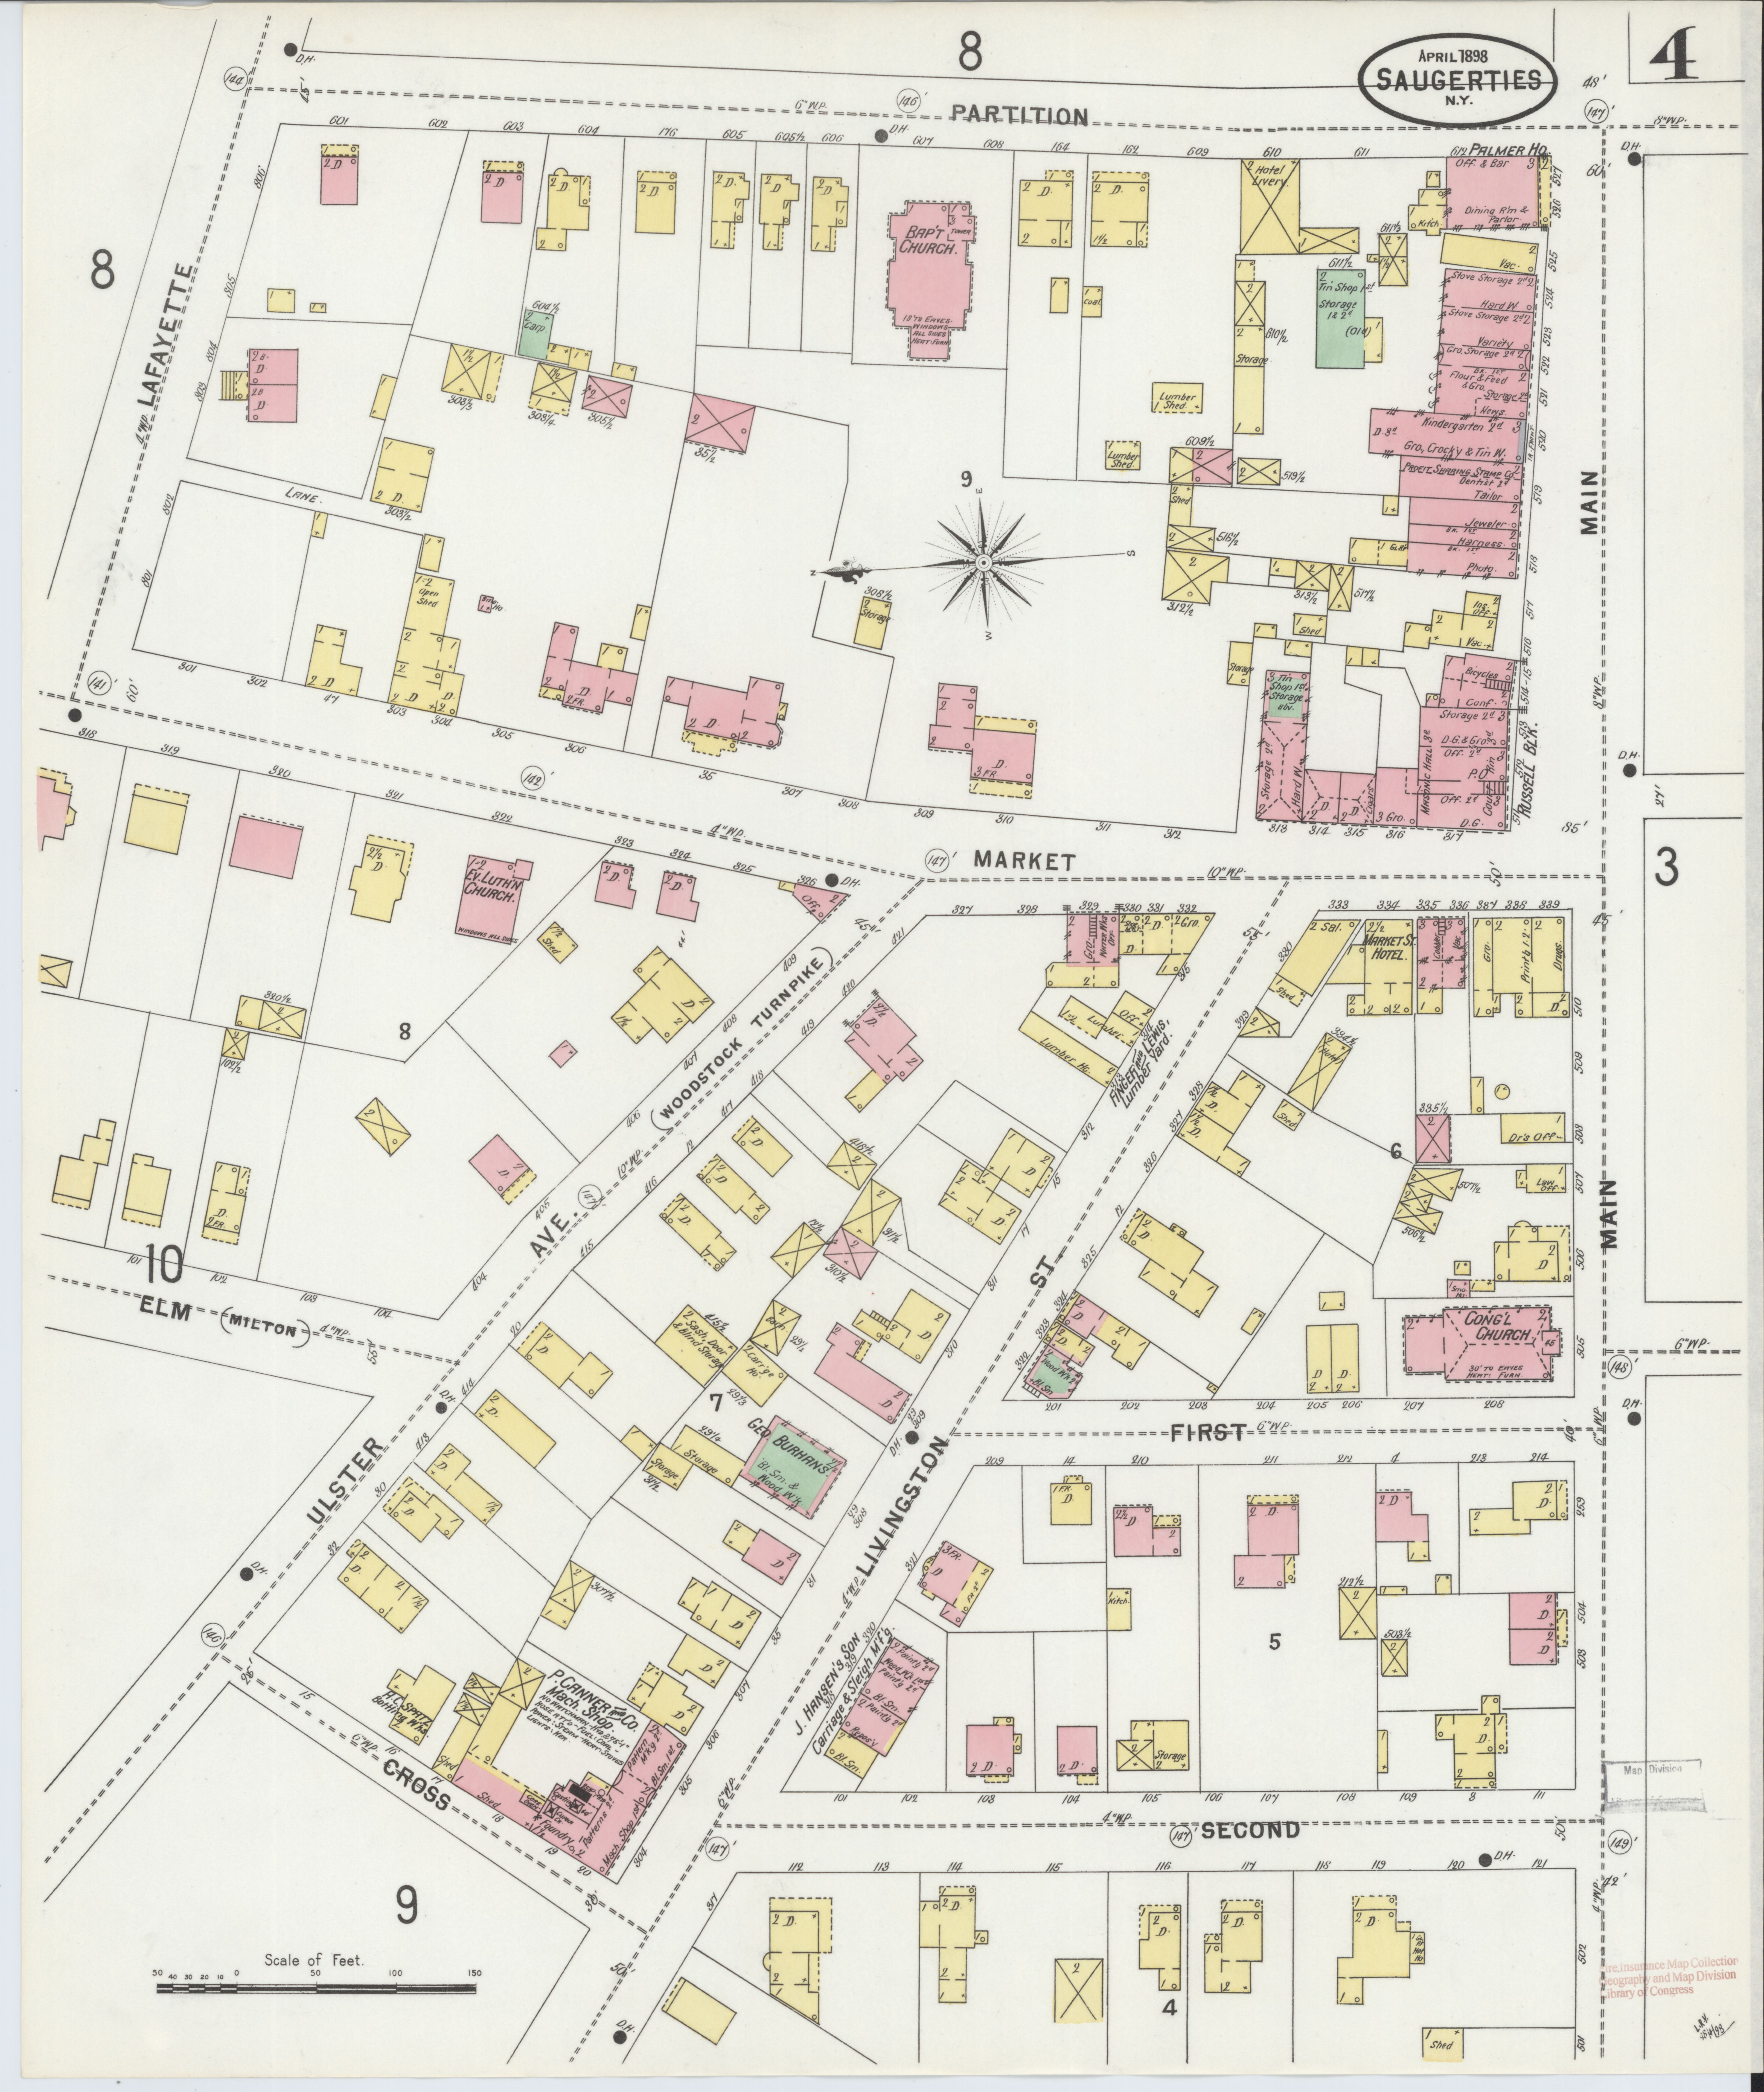 Ulster County New York Map.File Sanborn Fire Insurance Map From Saugerties Ulster County New